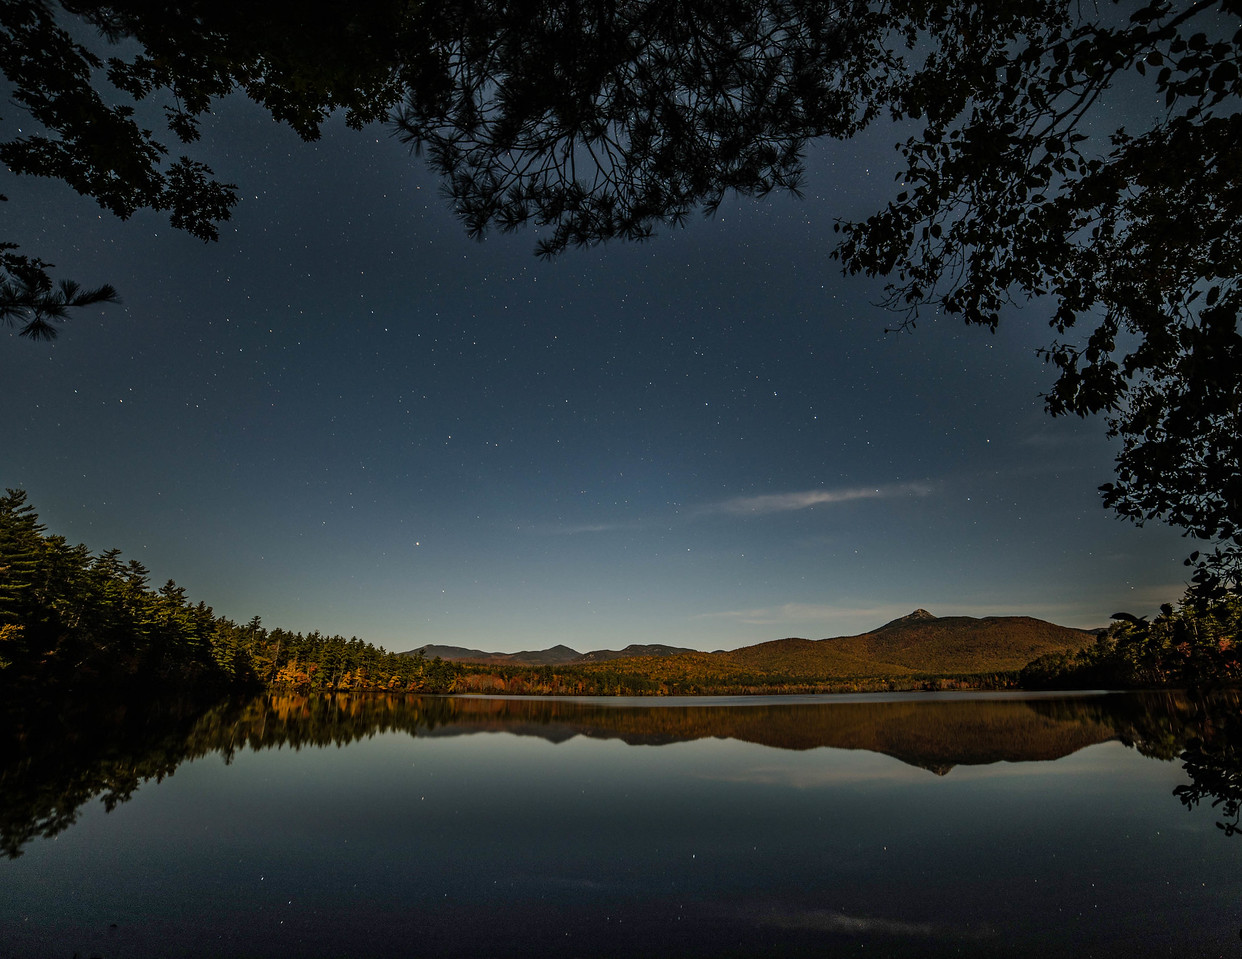 Lake Chocorua Moonlight